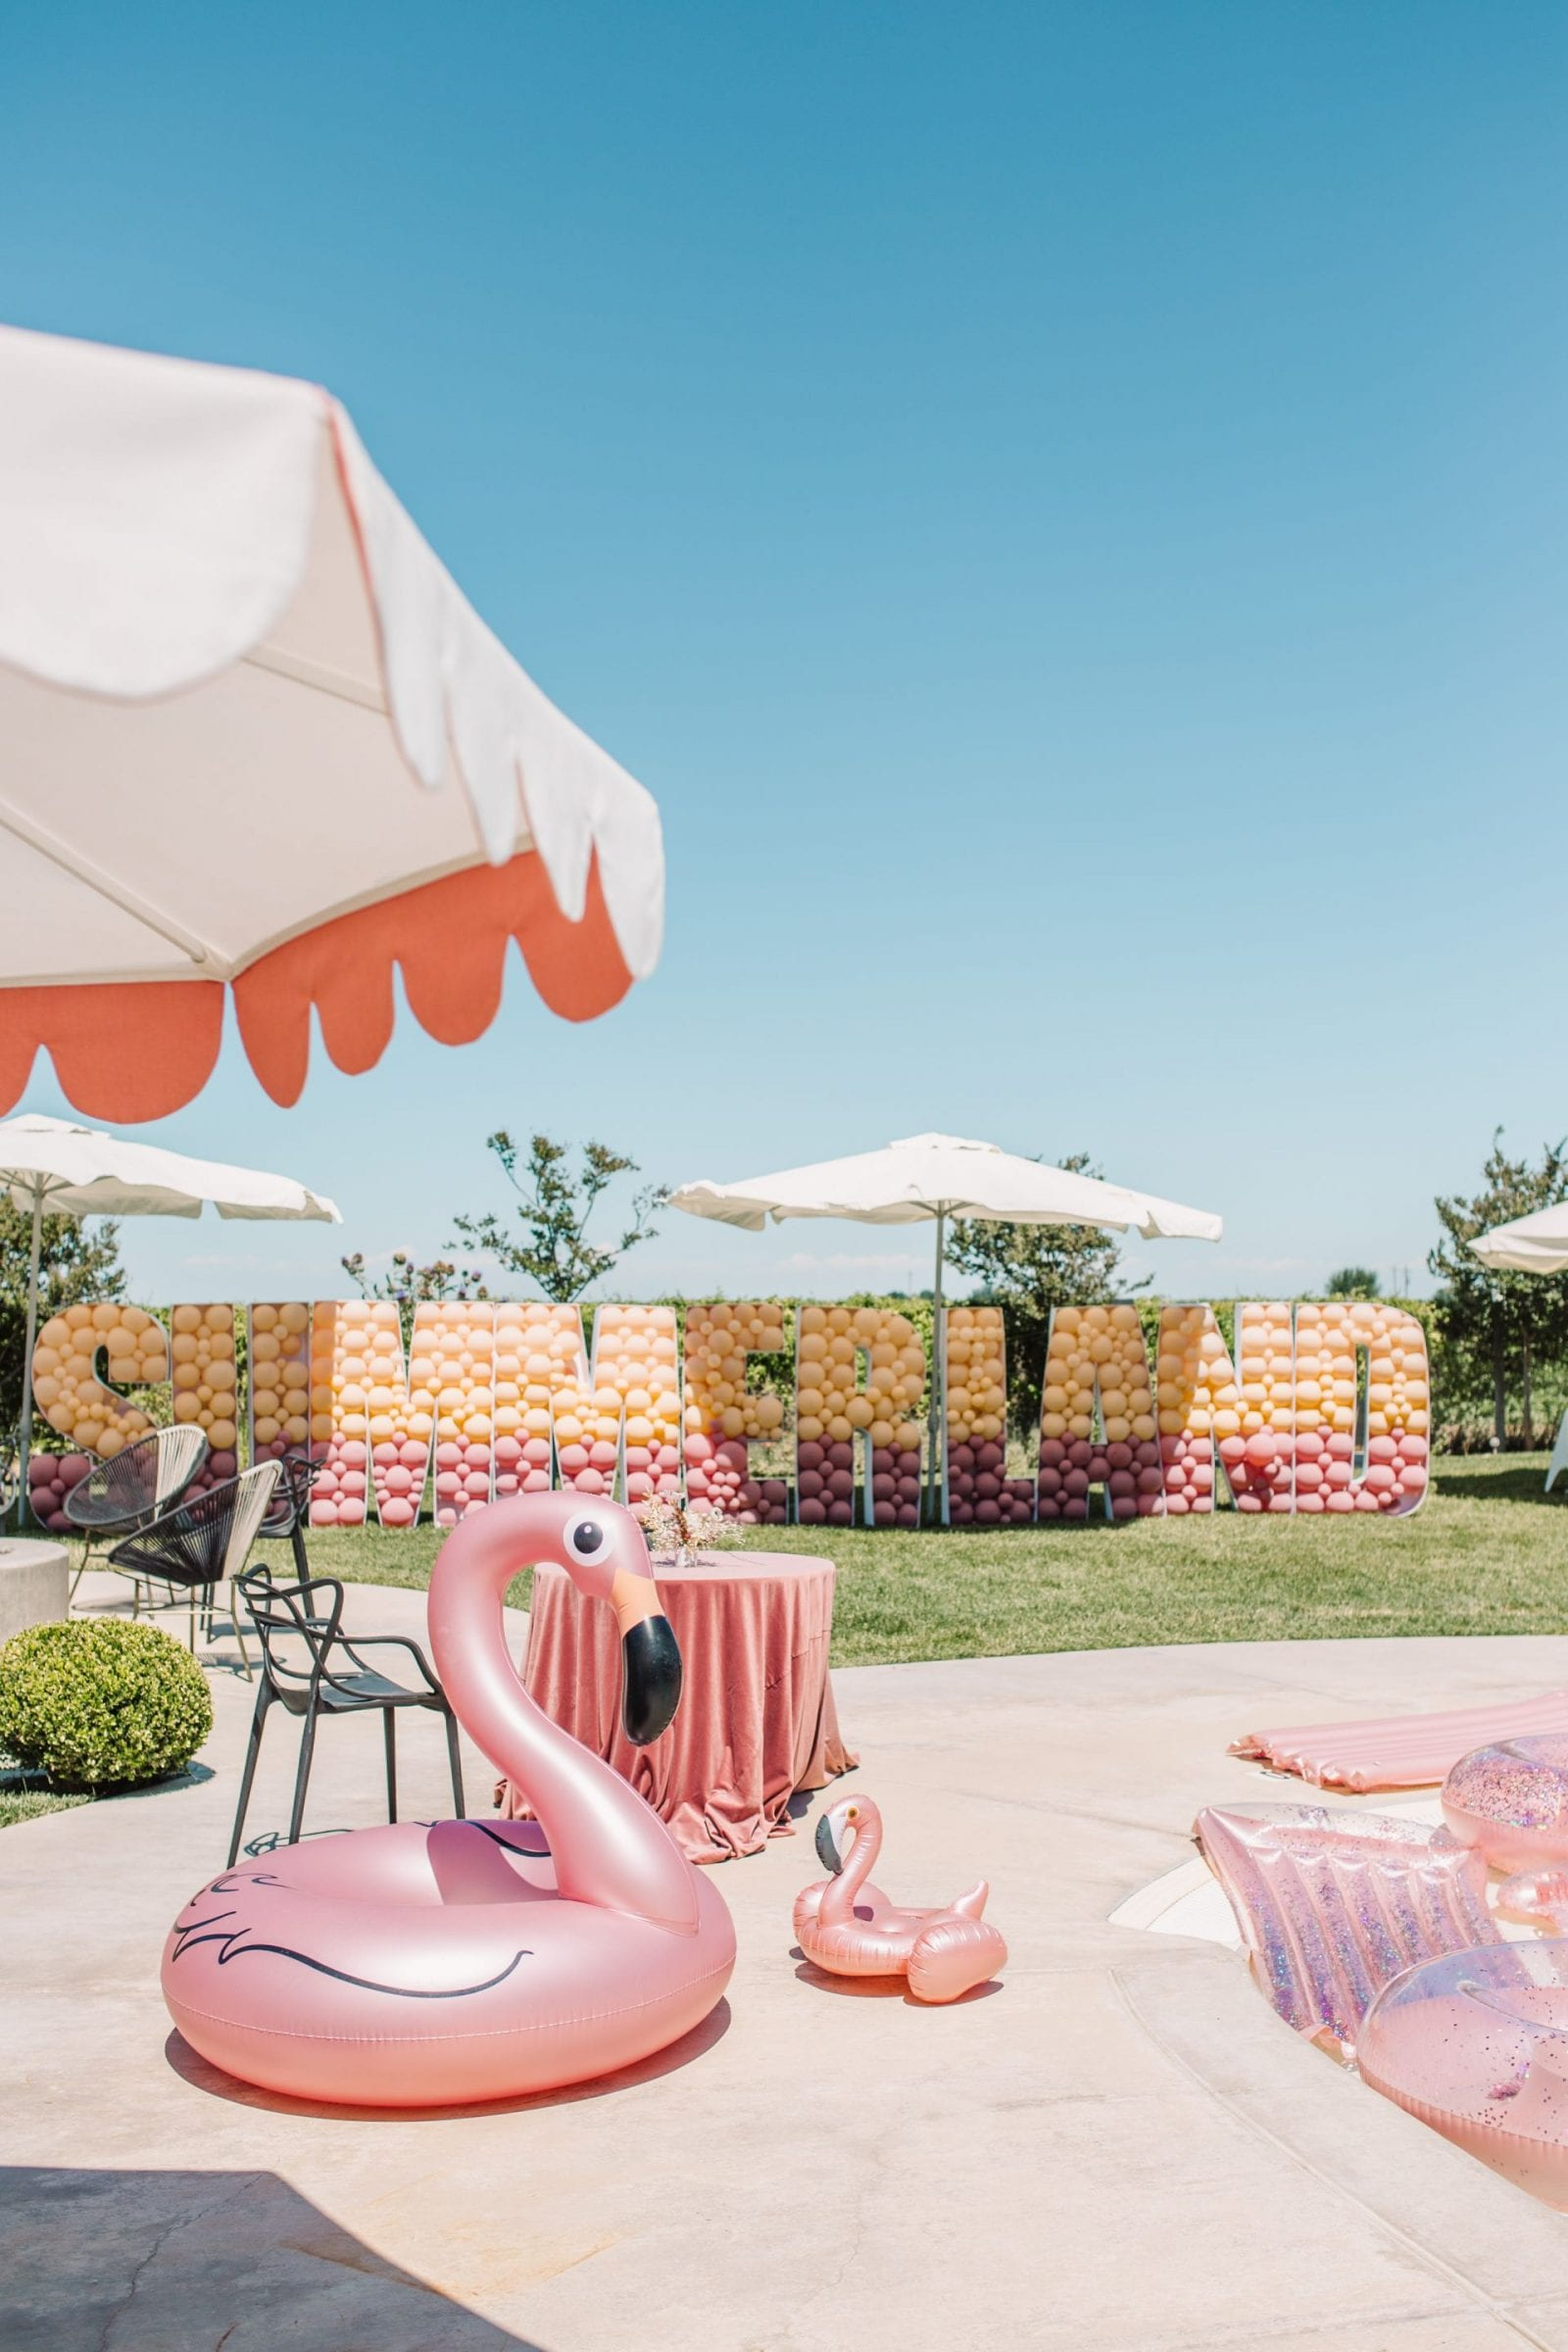 Park Winters Summerland 2019 | Summer Pool Party Inspiration | Installation Design | SarahMichiko.com